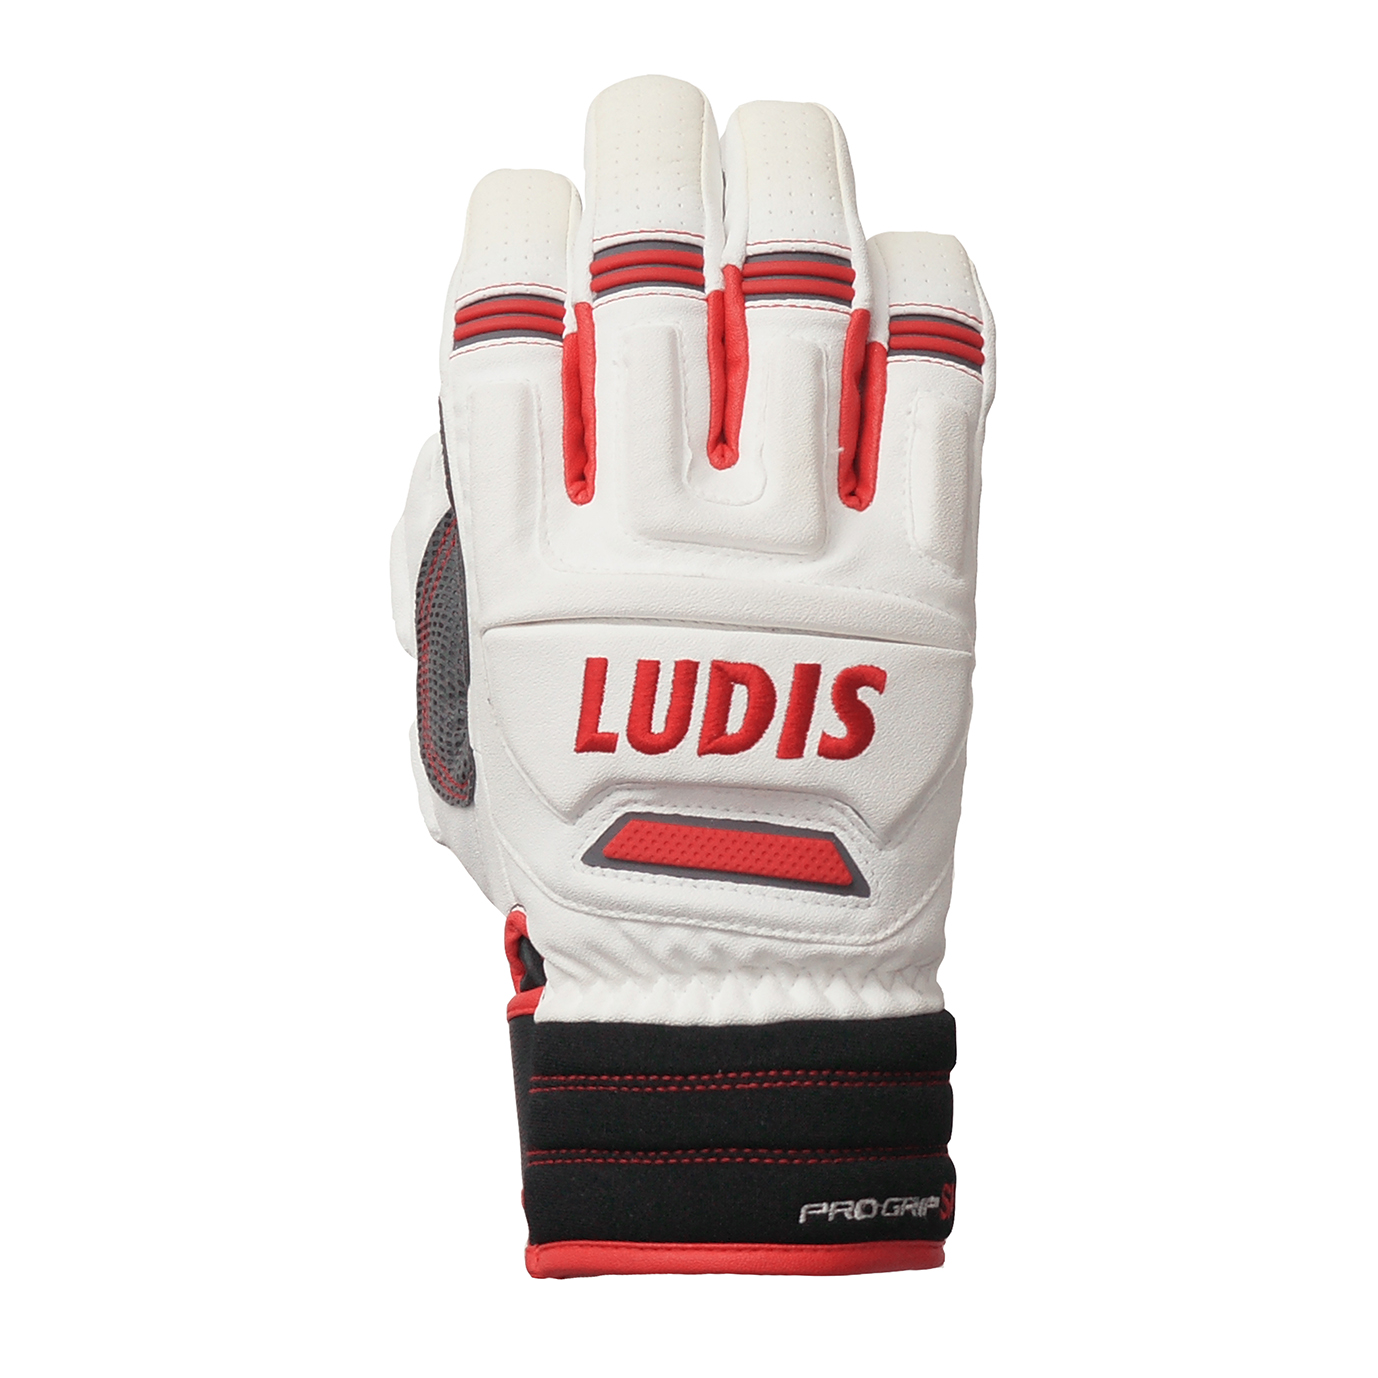 1920 루디스 장갑 RUDIS PRO GRIP S_WHITE RED